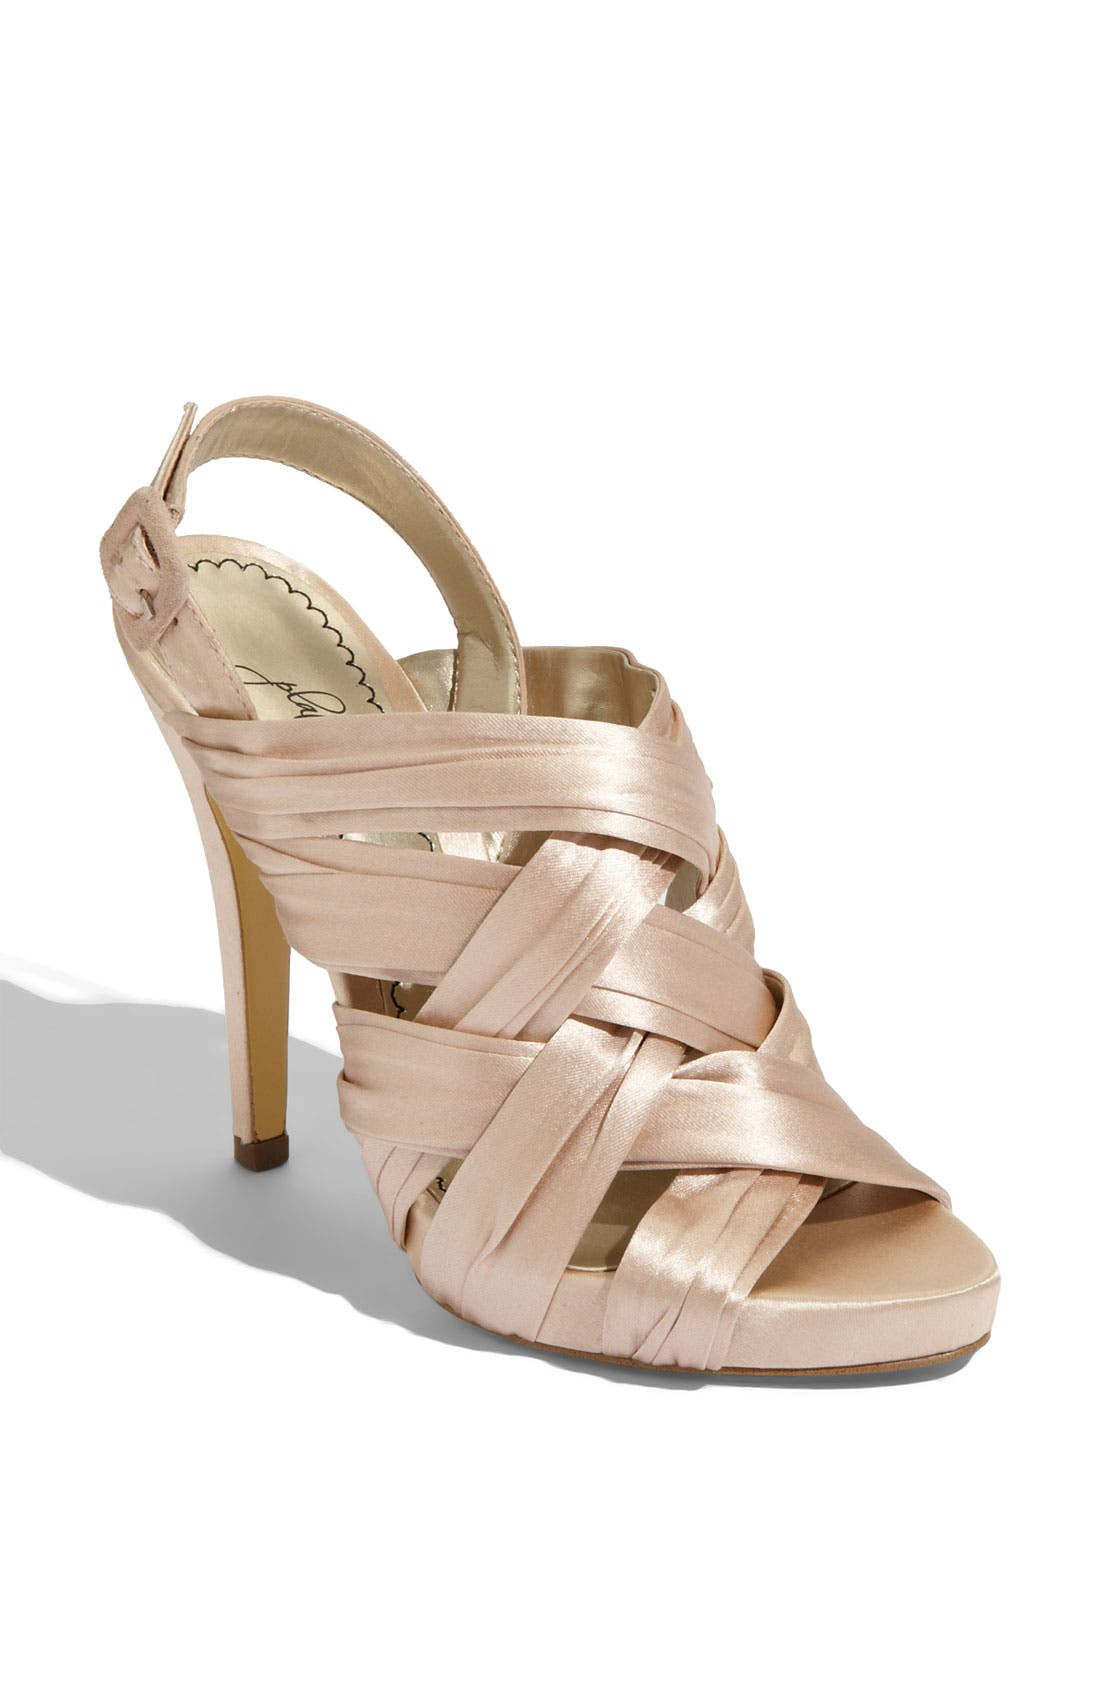 Main Image - BP. 'Kenna' Sandal